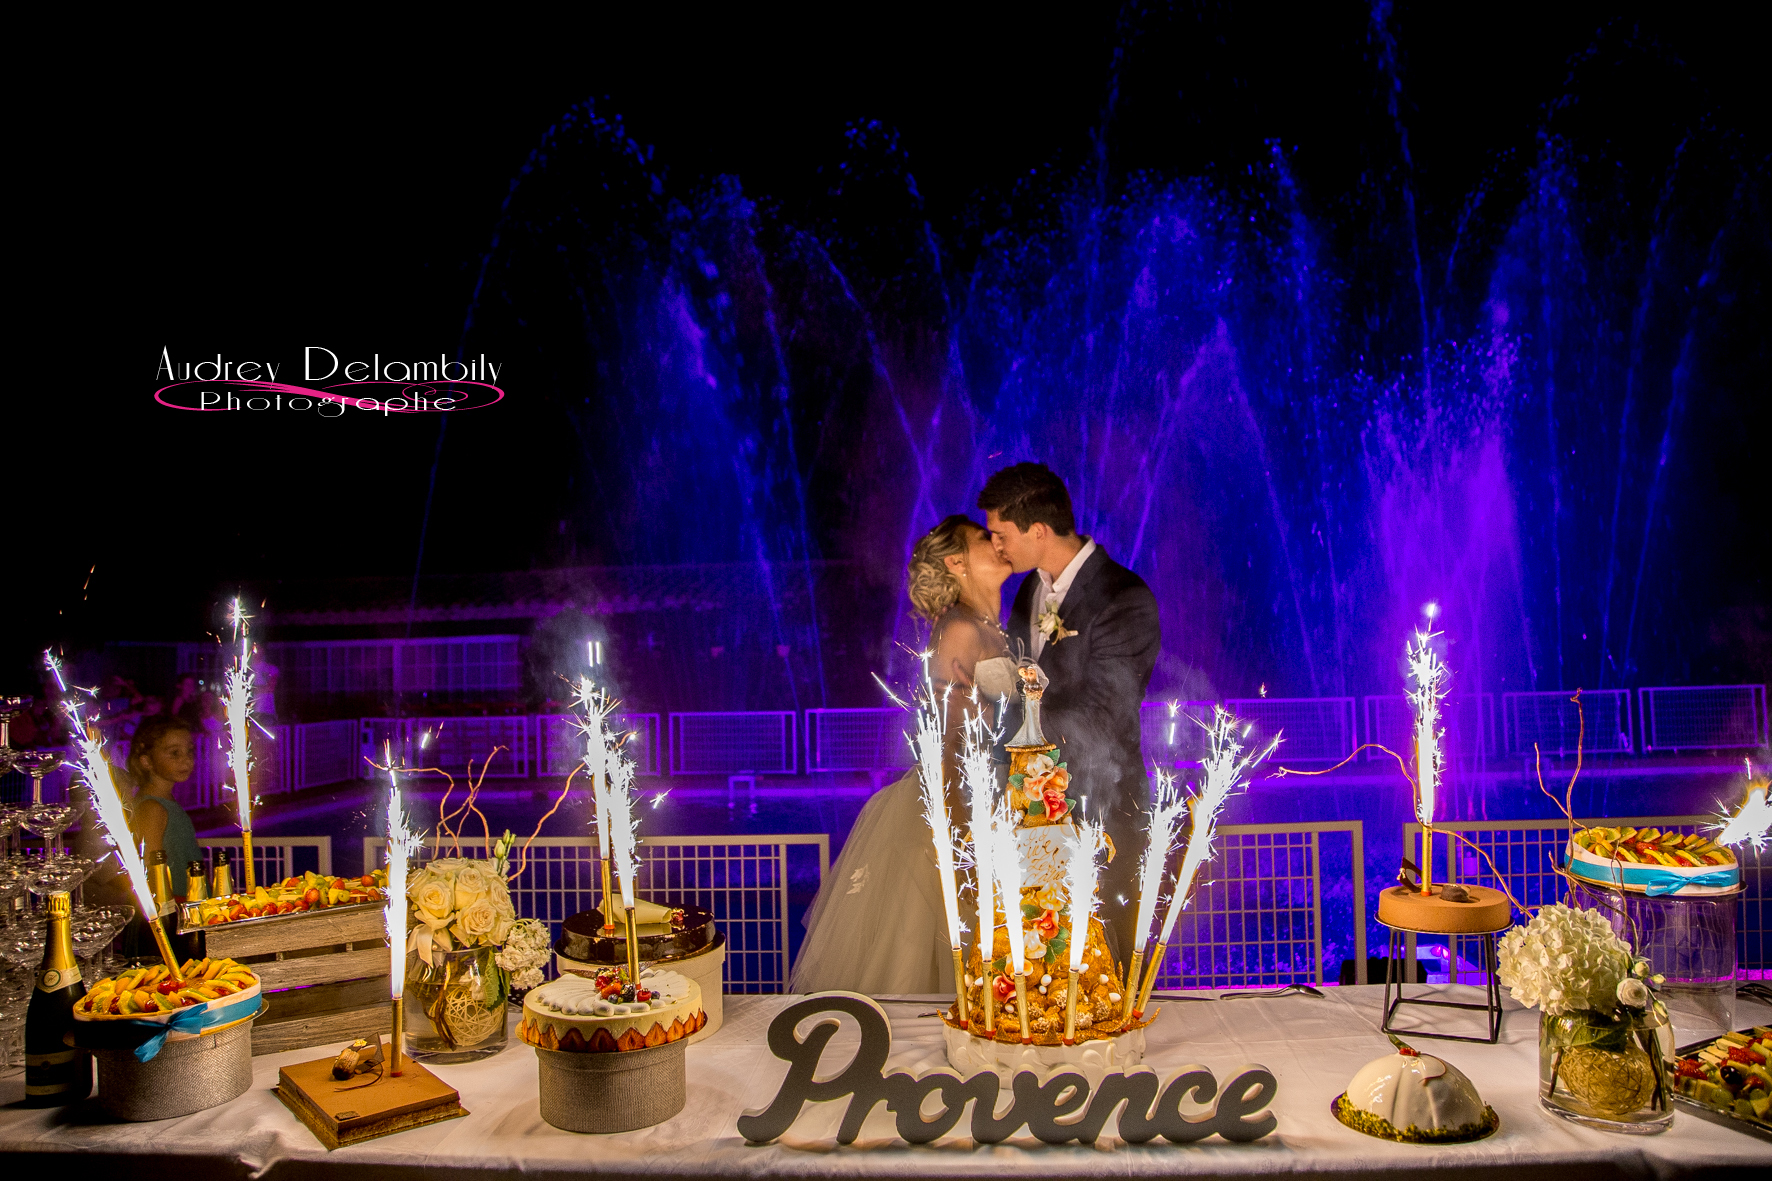 photographe mariage pavillon sully aumerade pierrefeu audrey delambily - Chateau De Sully Mariage